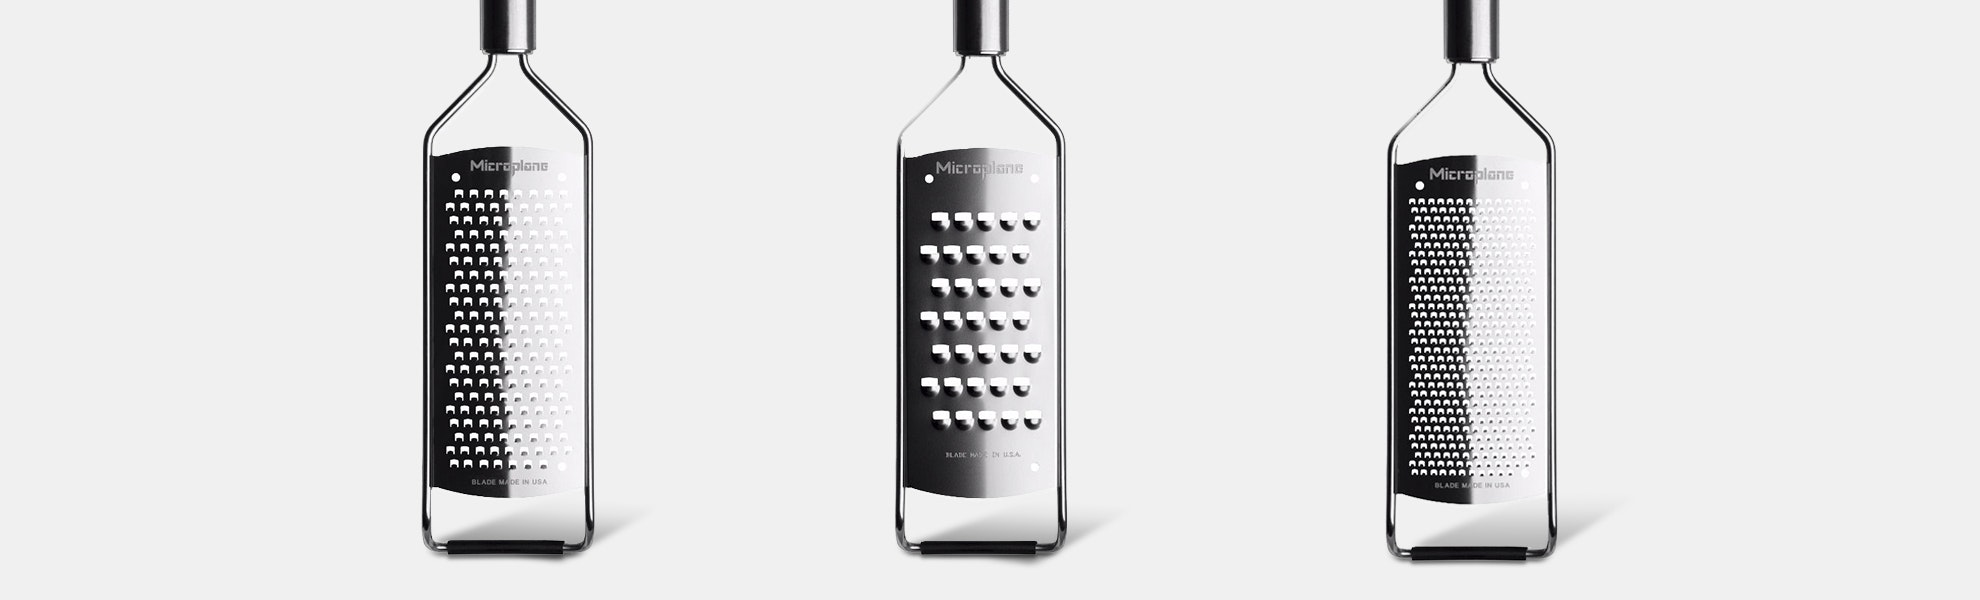 Microplane Professional Series Graters